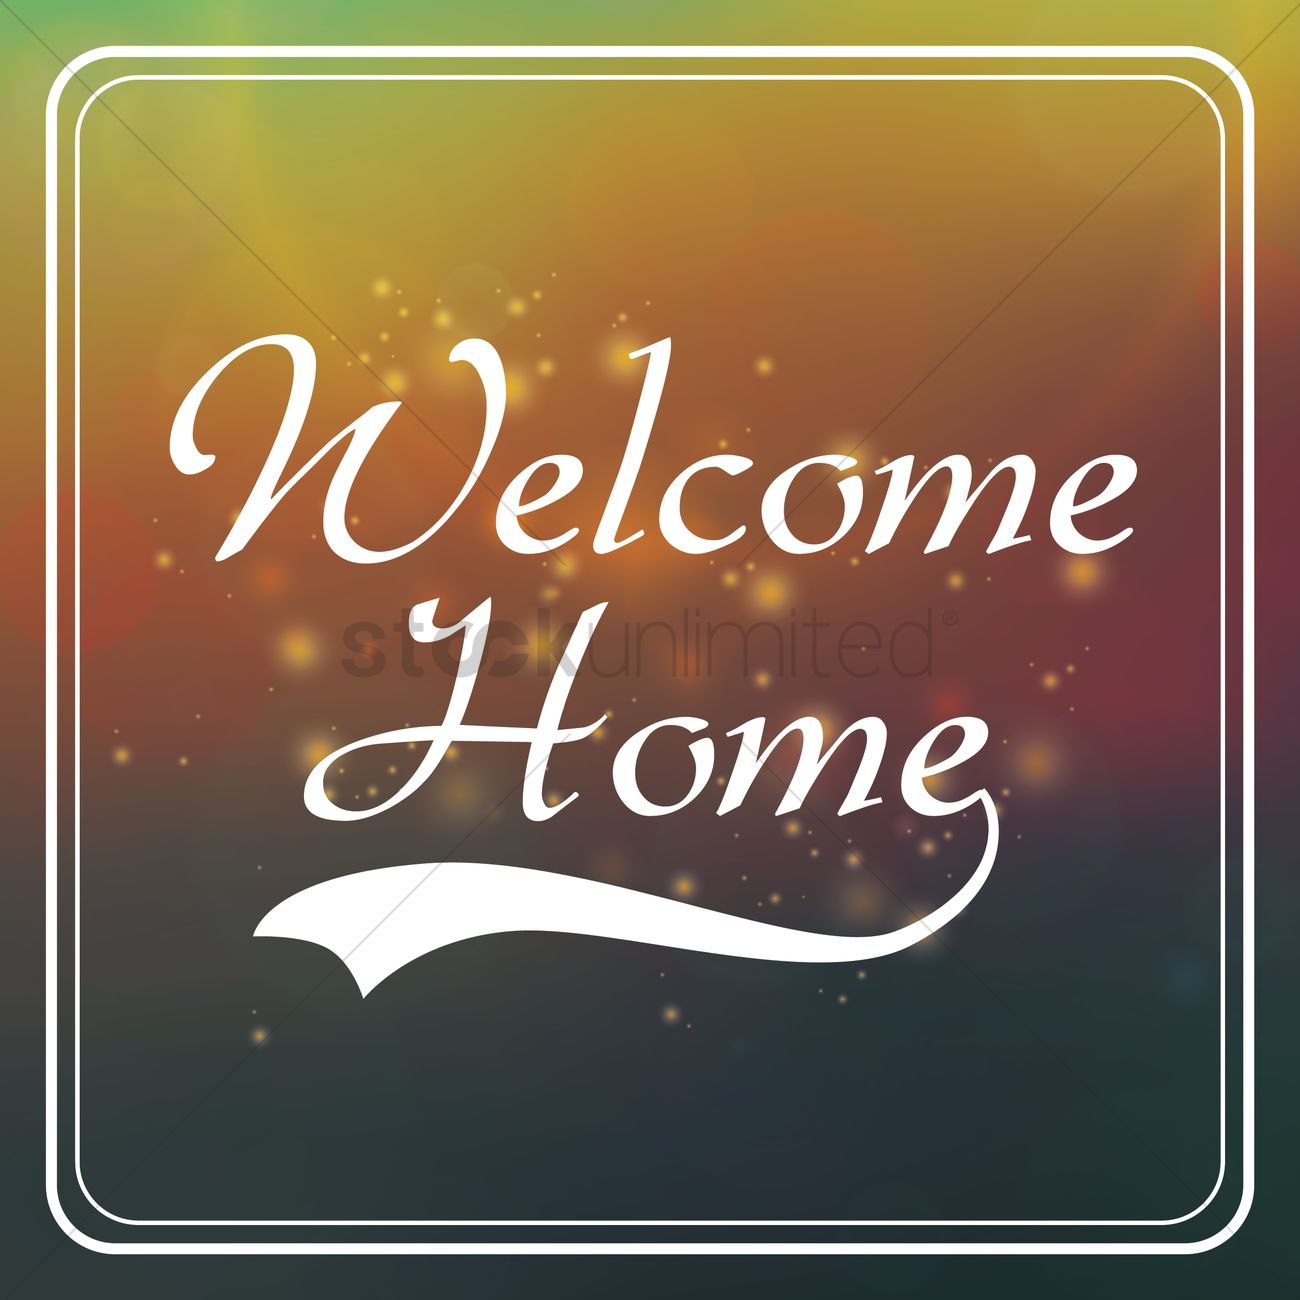 Welcome home greeting vector image 1610036 stockunlimited welcome home greeting vector graphic m4hsunfo